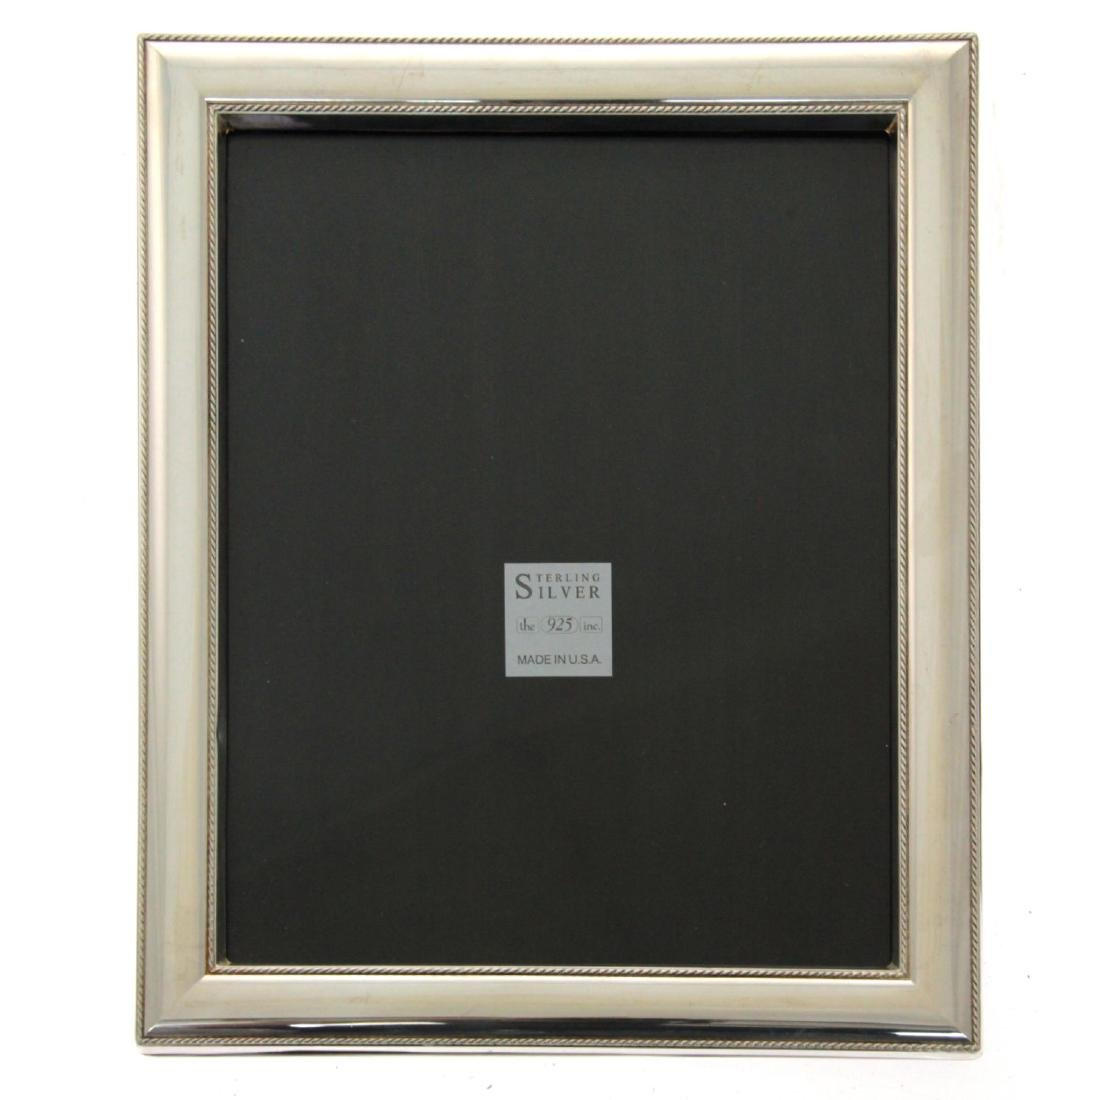 American Sterling Silver Photo Frame. - 2